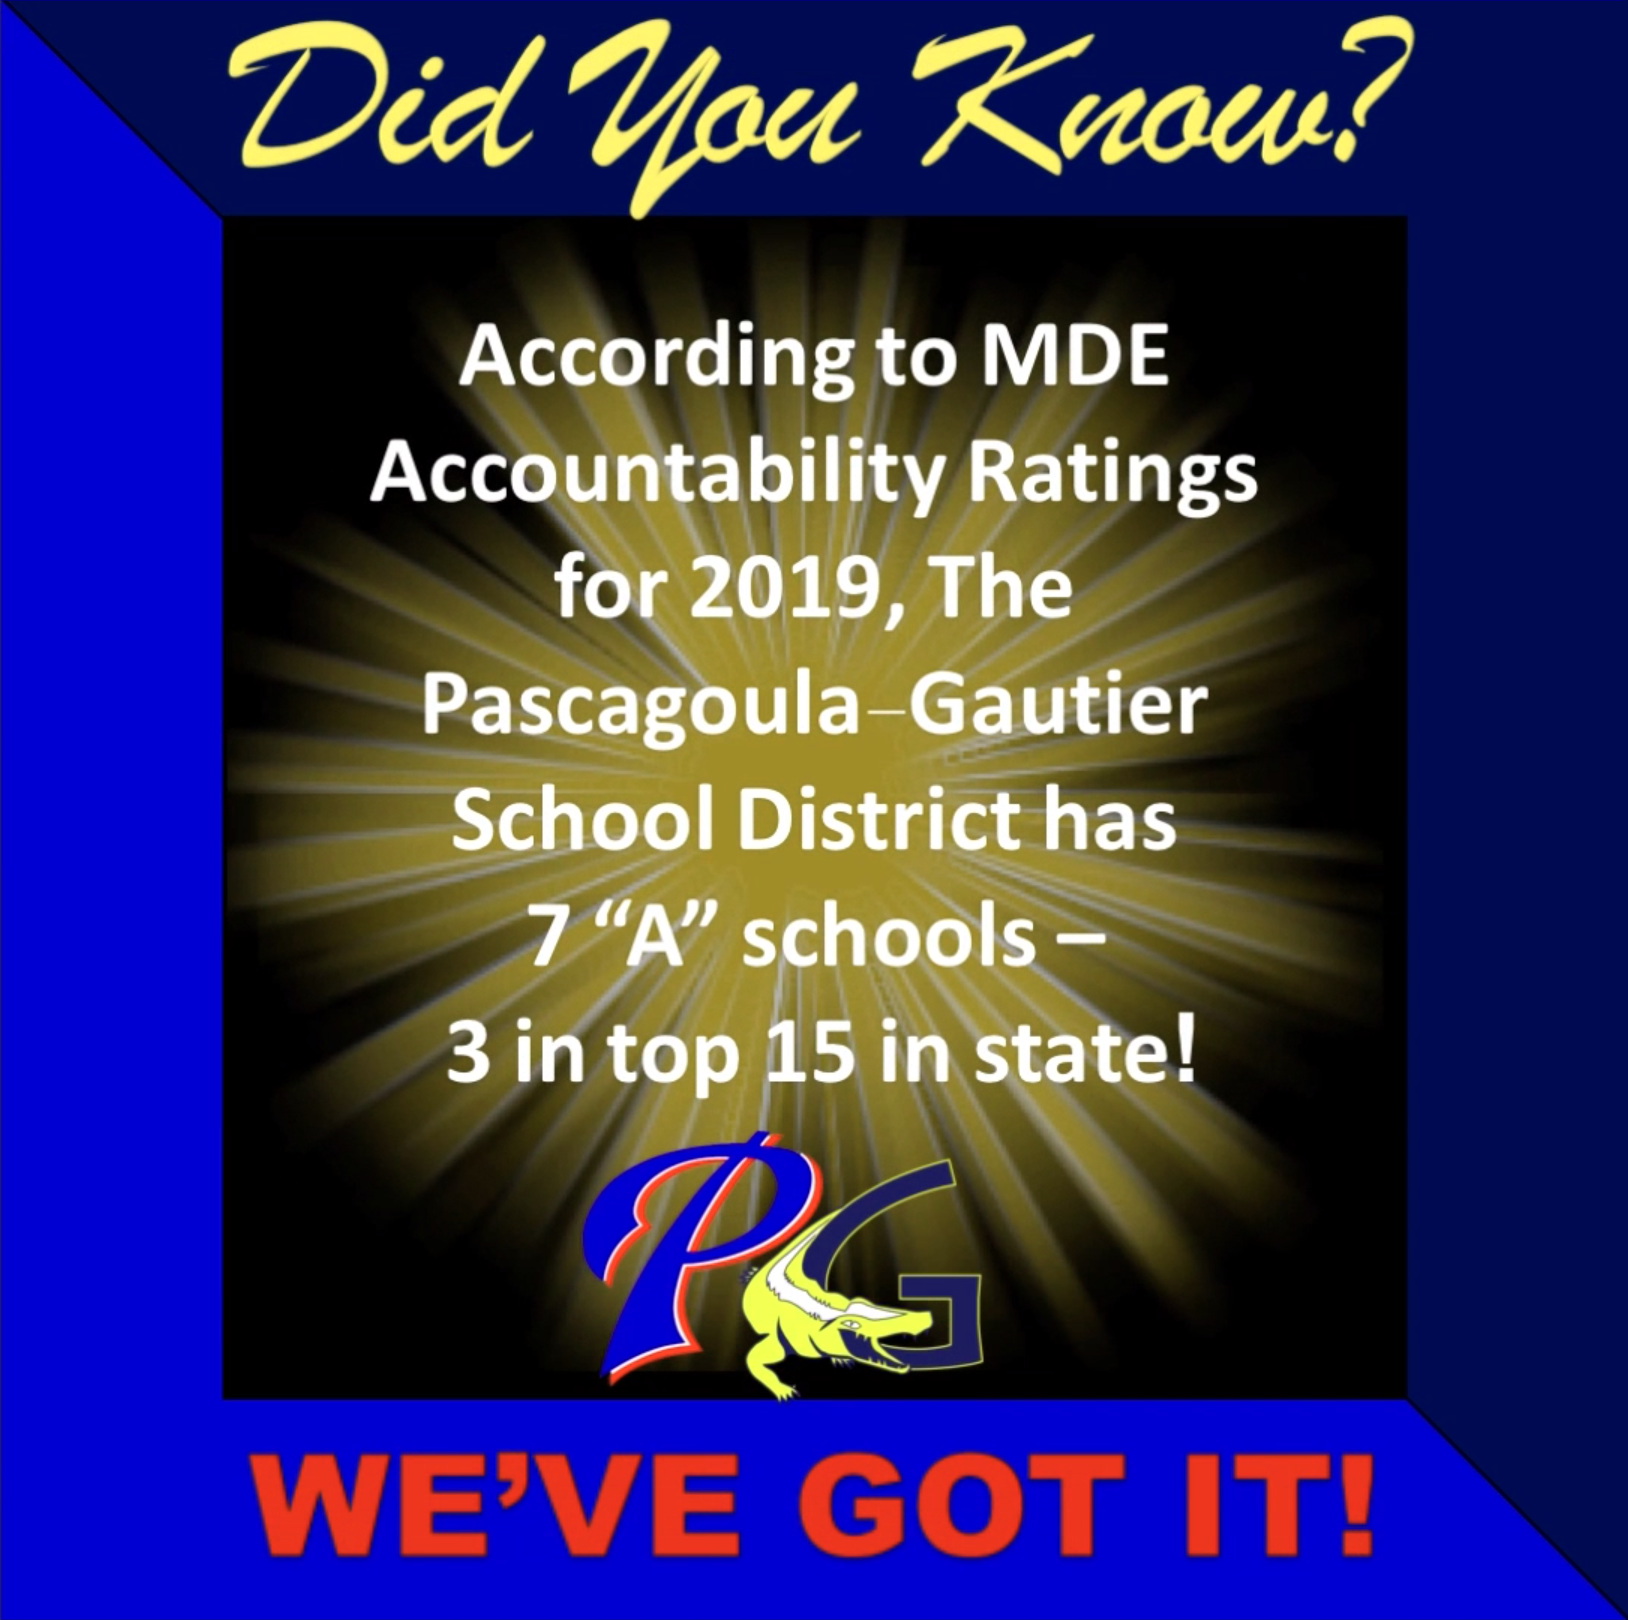 According to MDE Accountability Ratings for 2019, PGSD has 7 A schools - 3 in the top 15 in the state